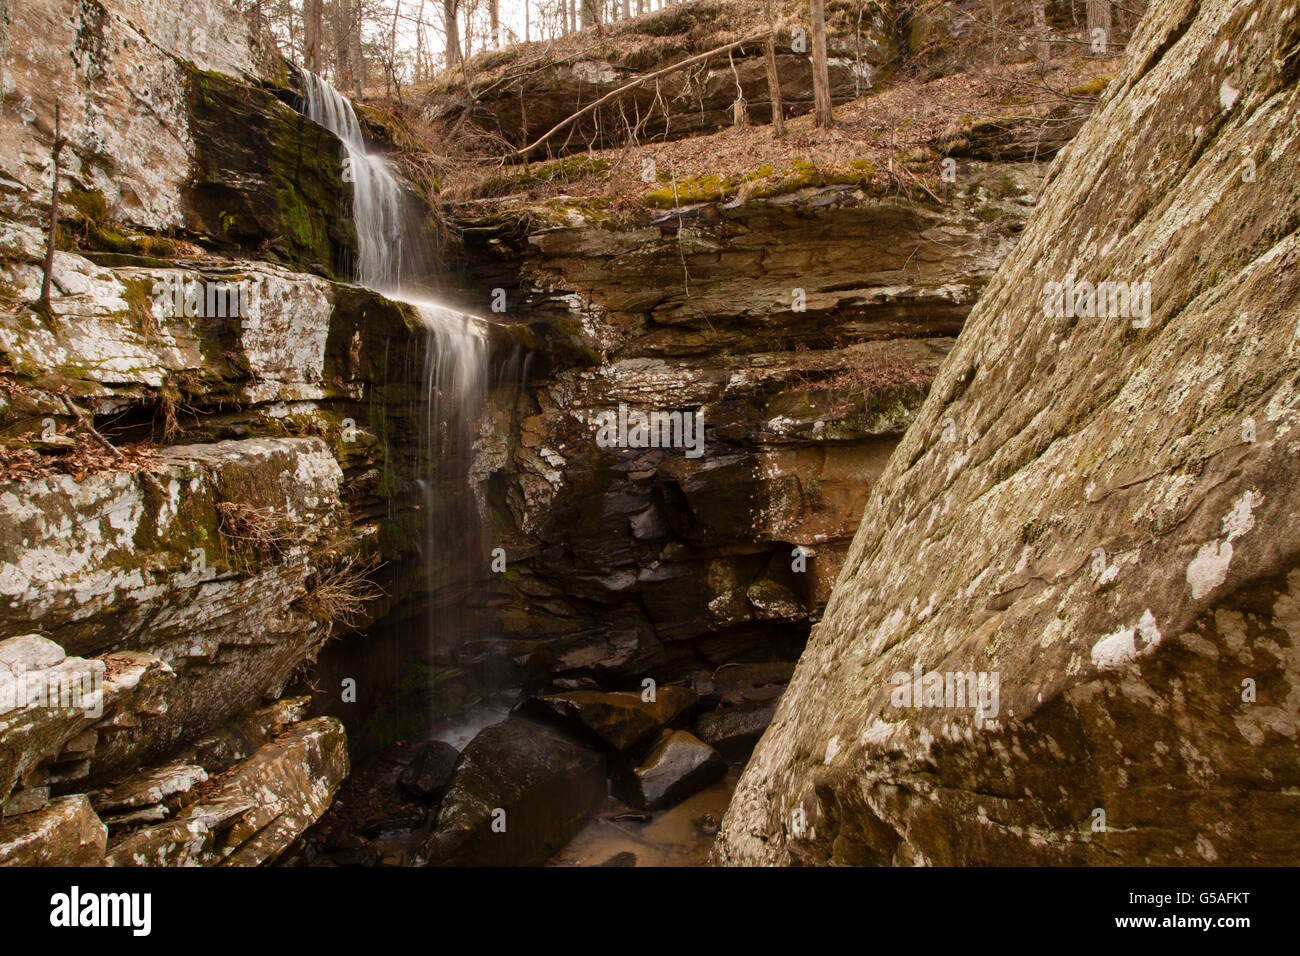 Burden Falls in the Shawnee National Forest - Stock Image